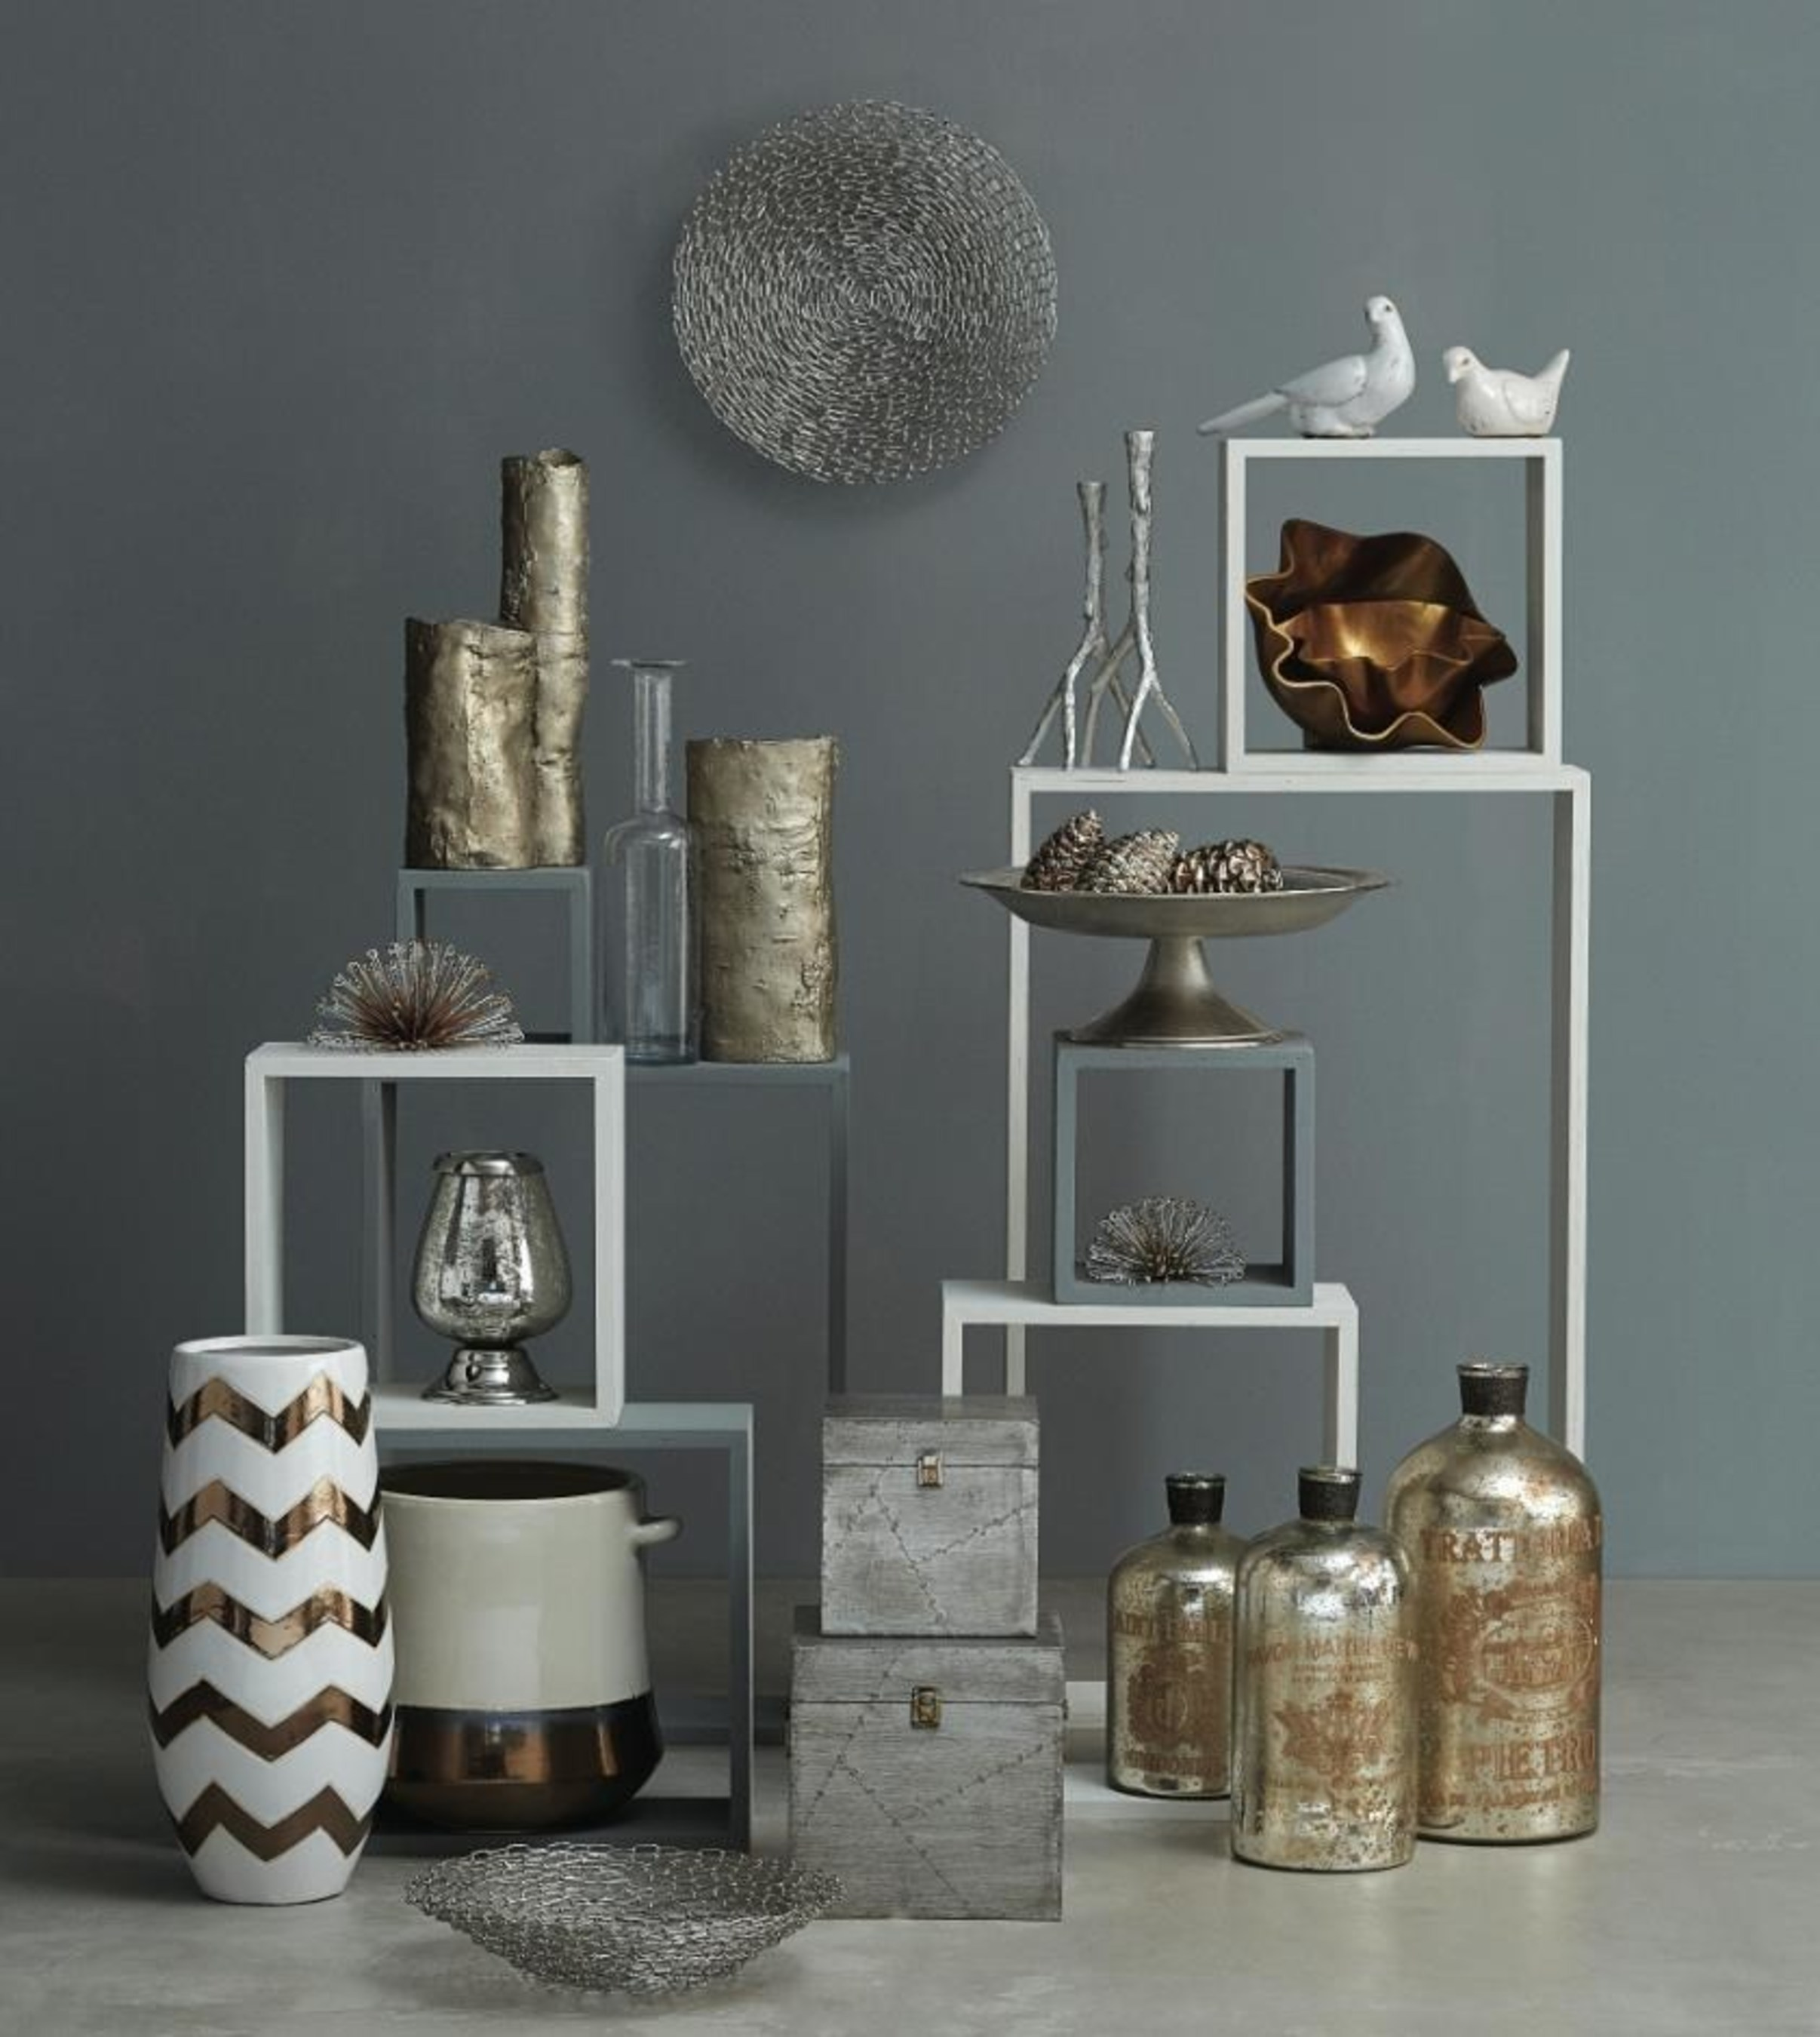 Home Decor Accessories: Art.com Completes Its Home Decorating Experience With